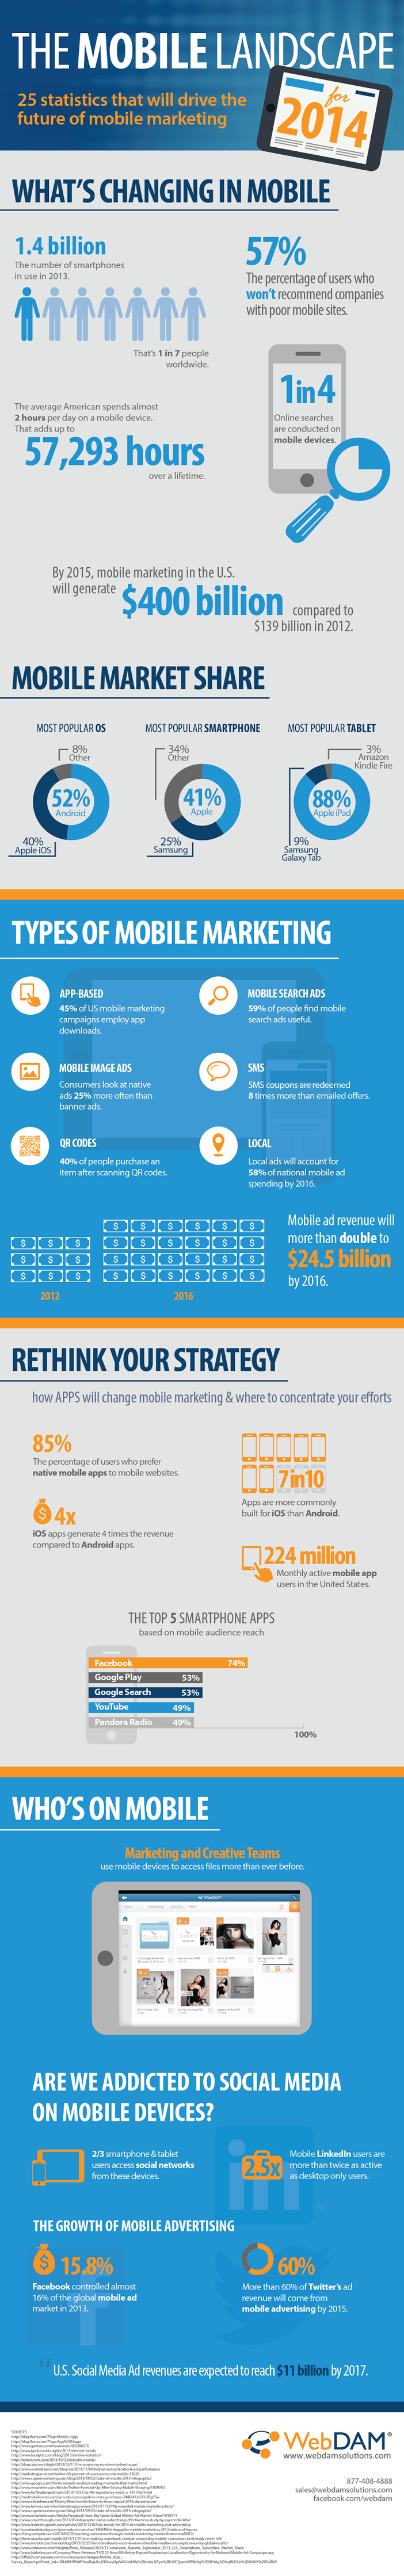 The Mobile marketing Landscape for 2014 - infographic